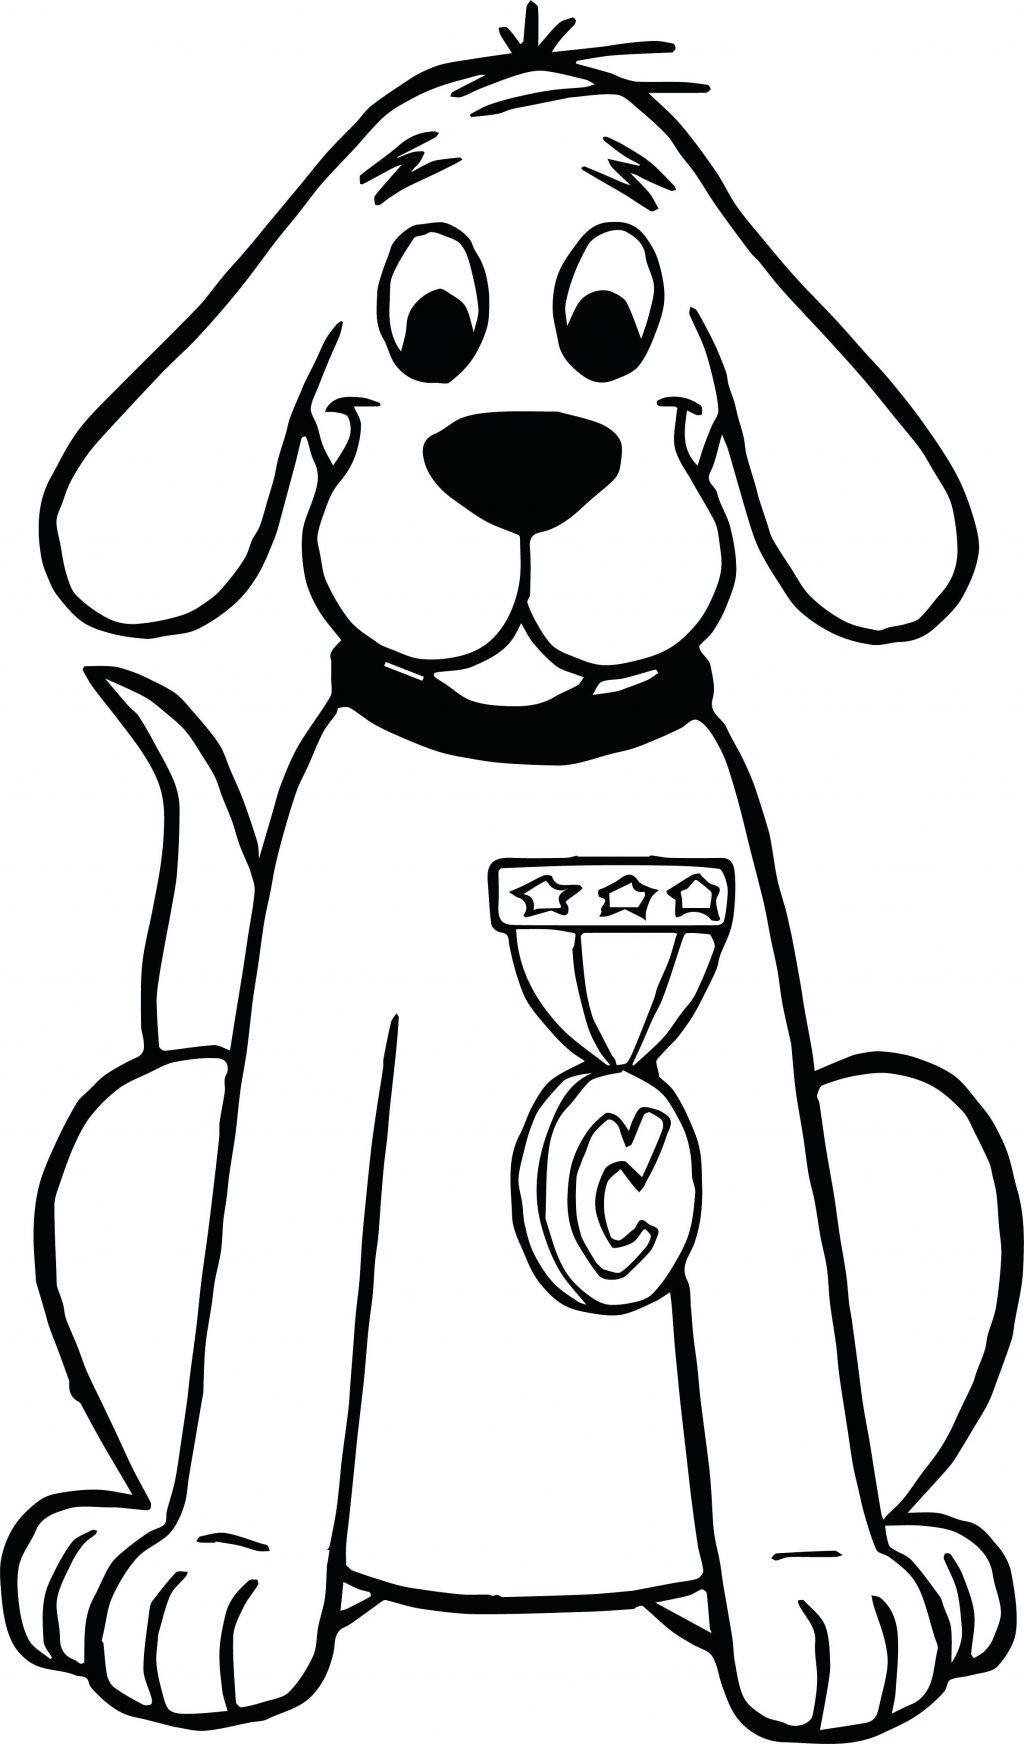 Clifford Coloring Pages At Getcolorings